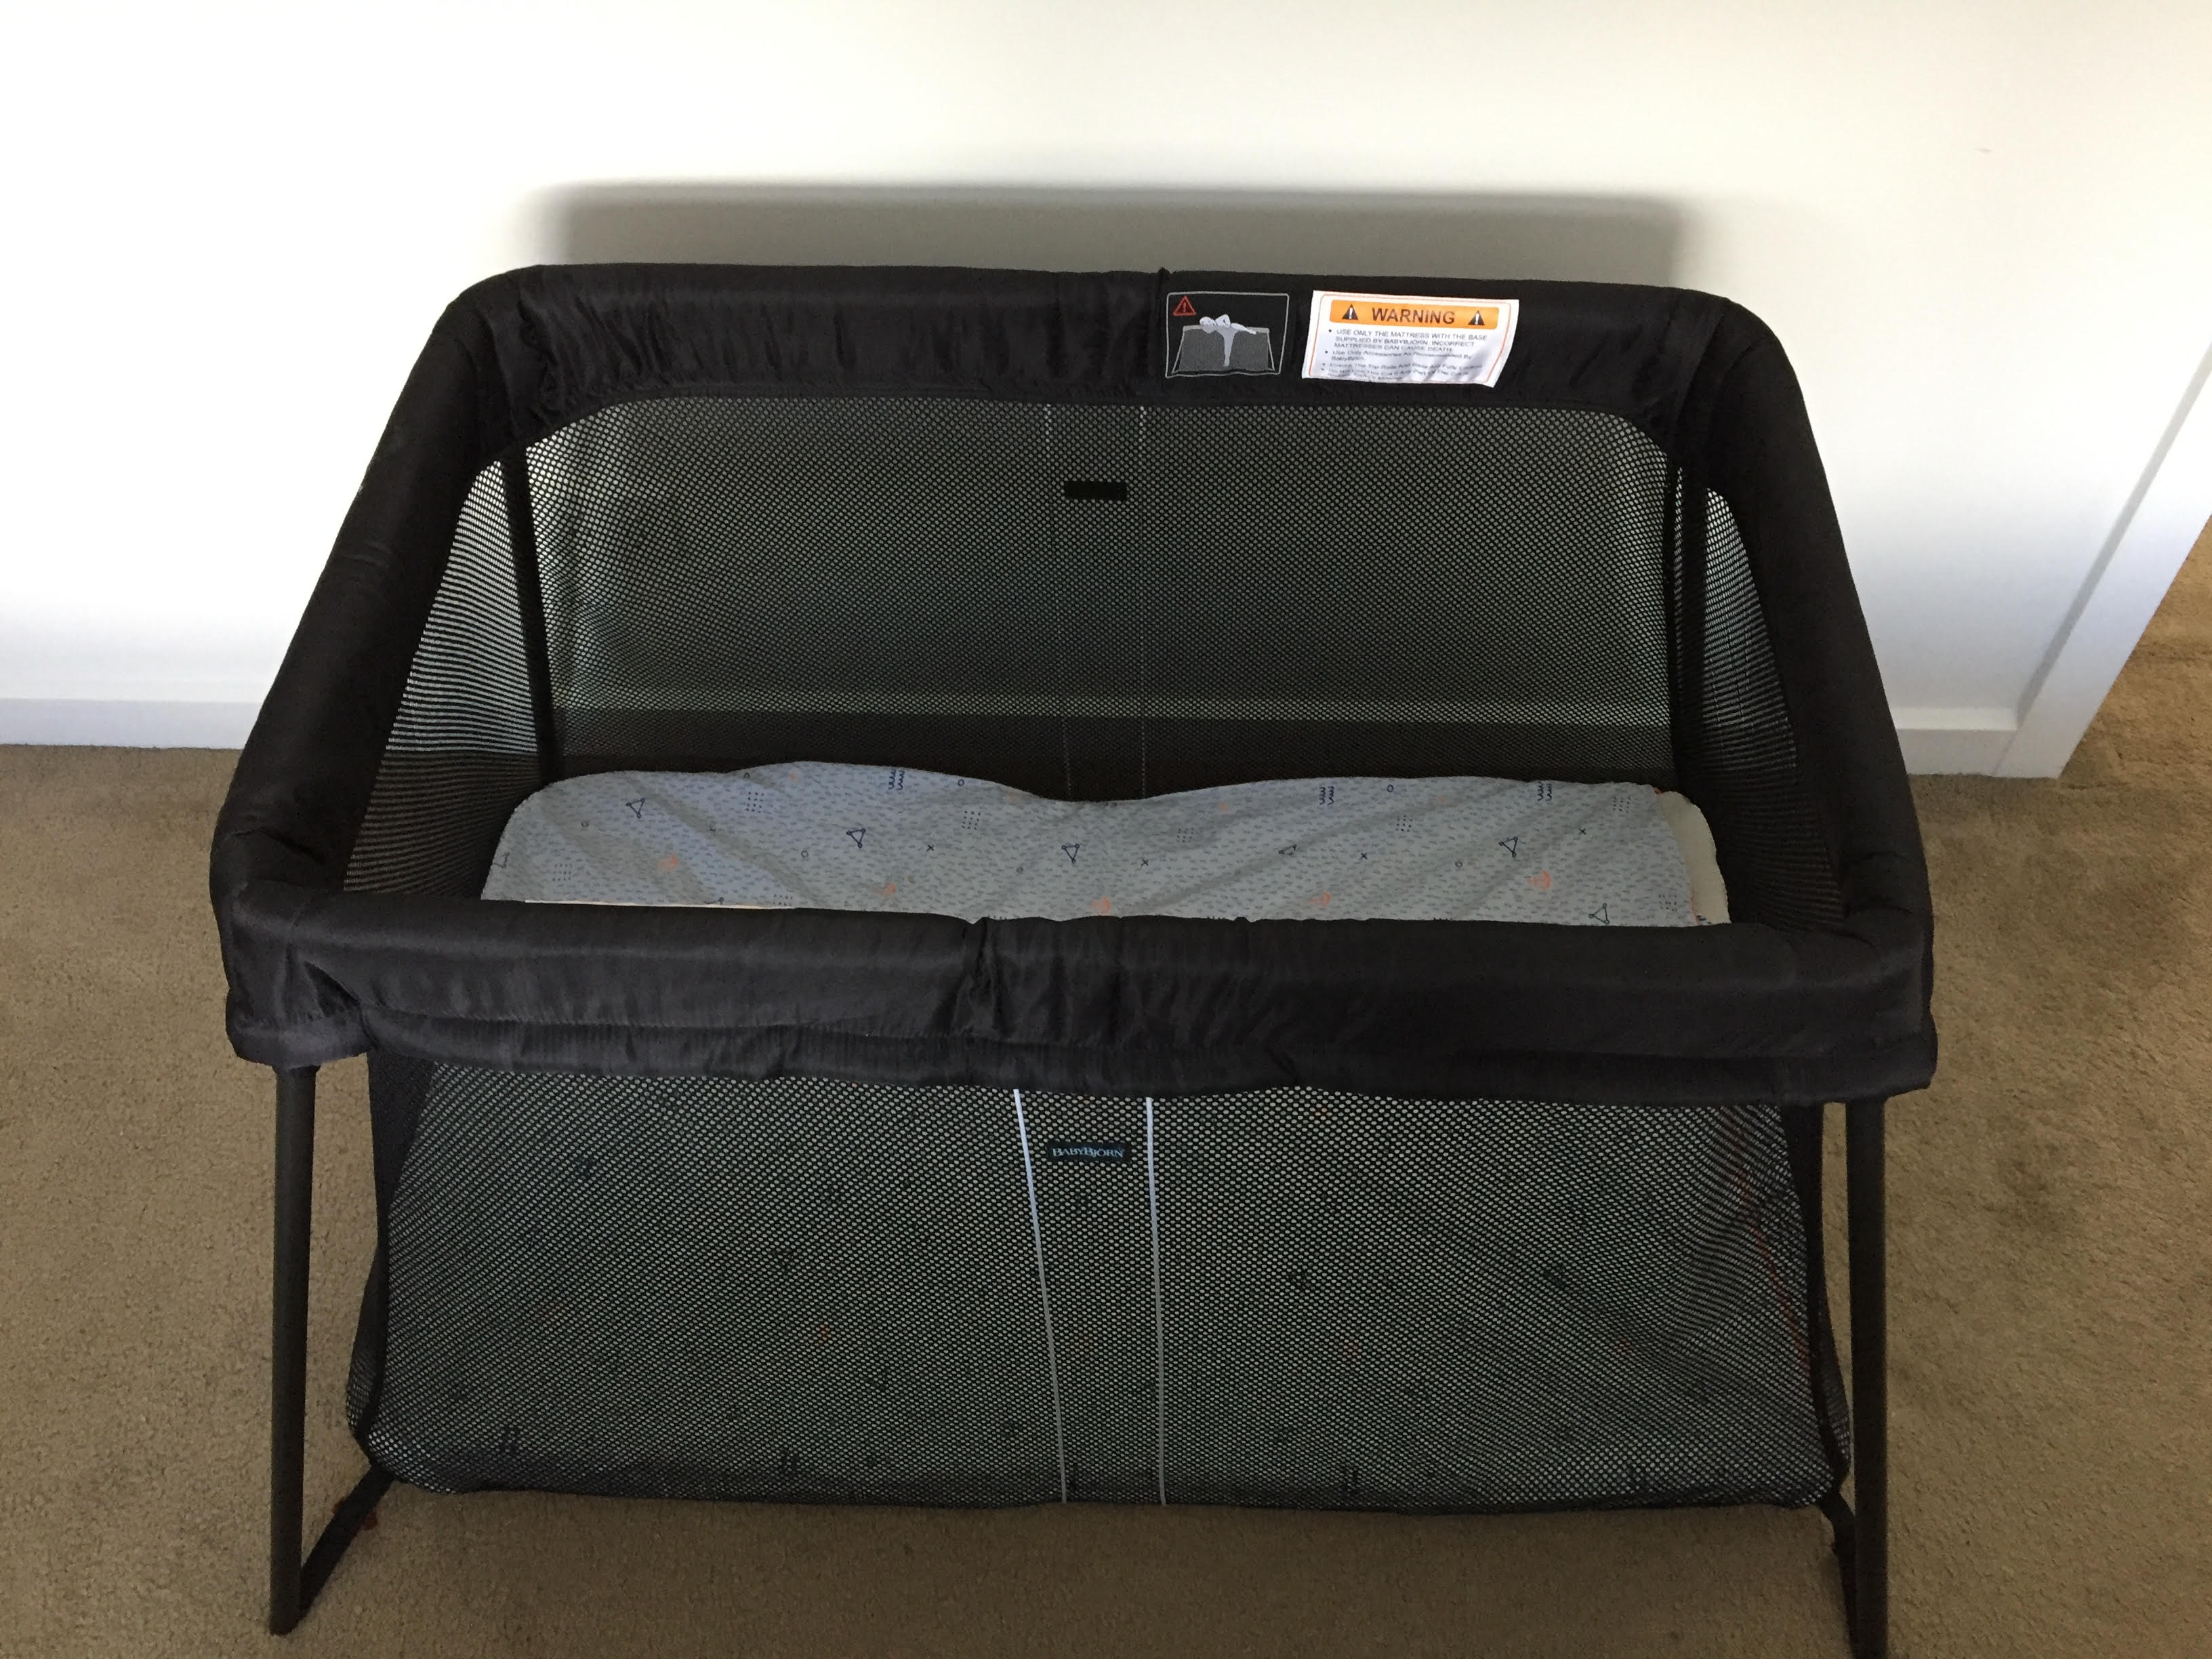 Babybjorn Travel Cot Light The Baby Industry 174